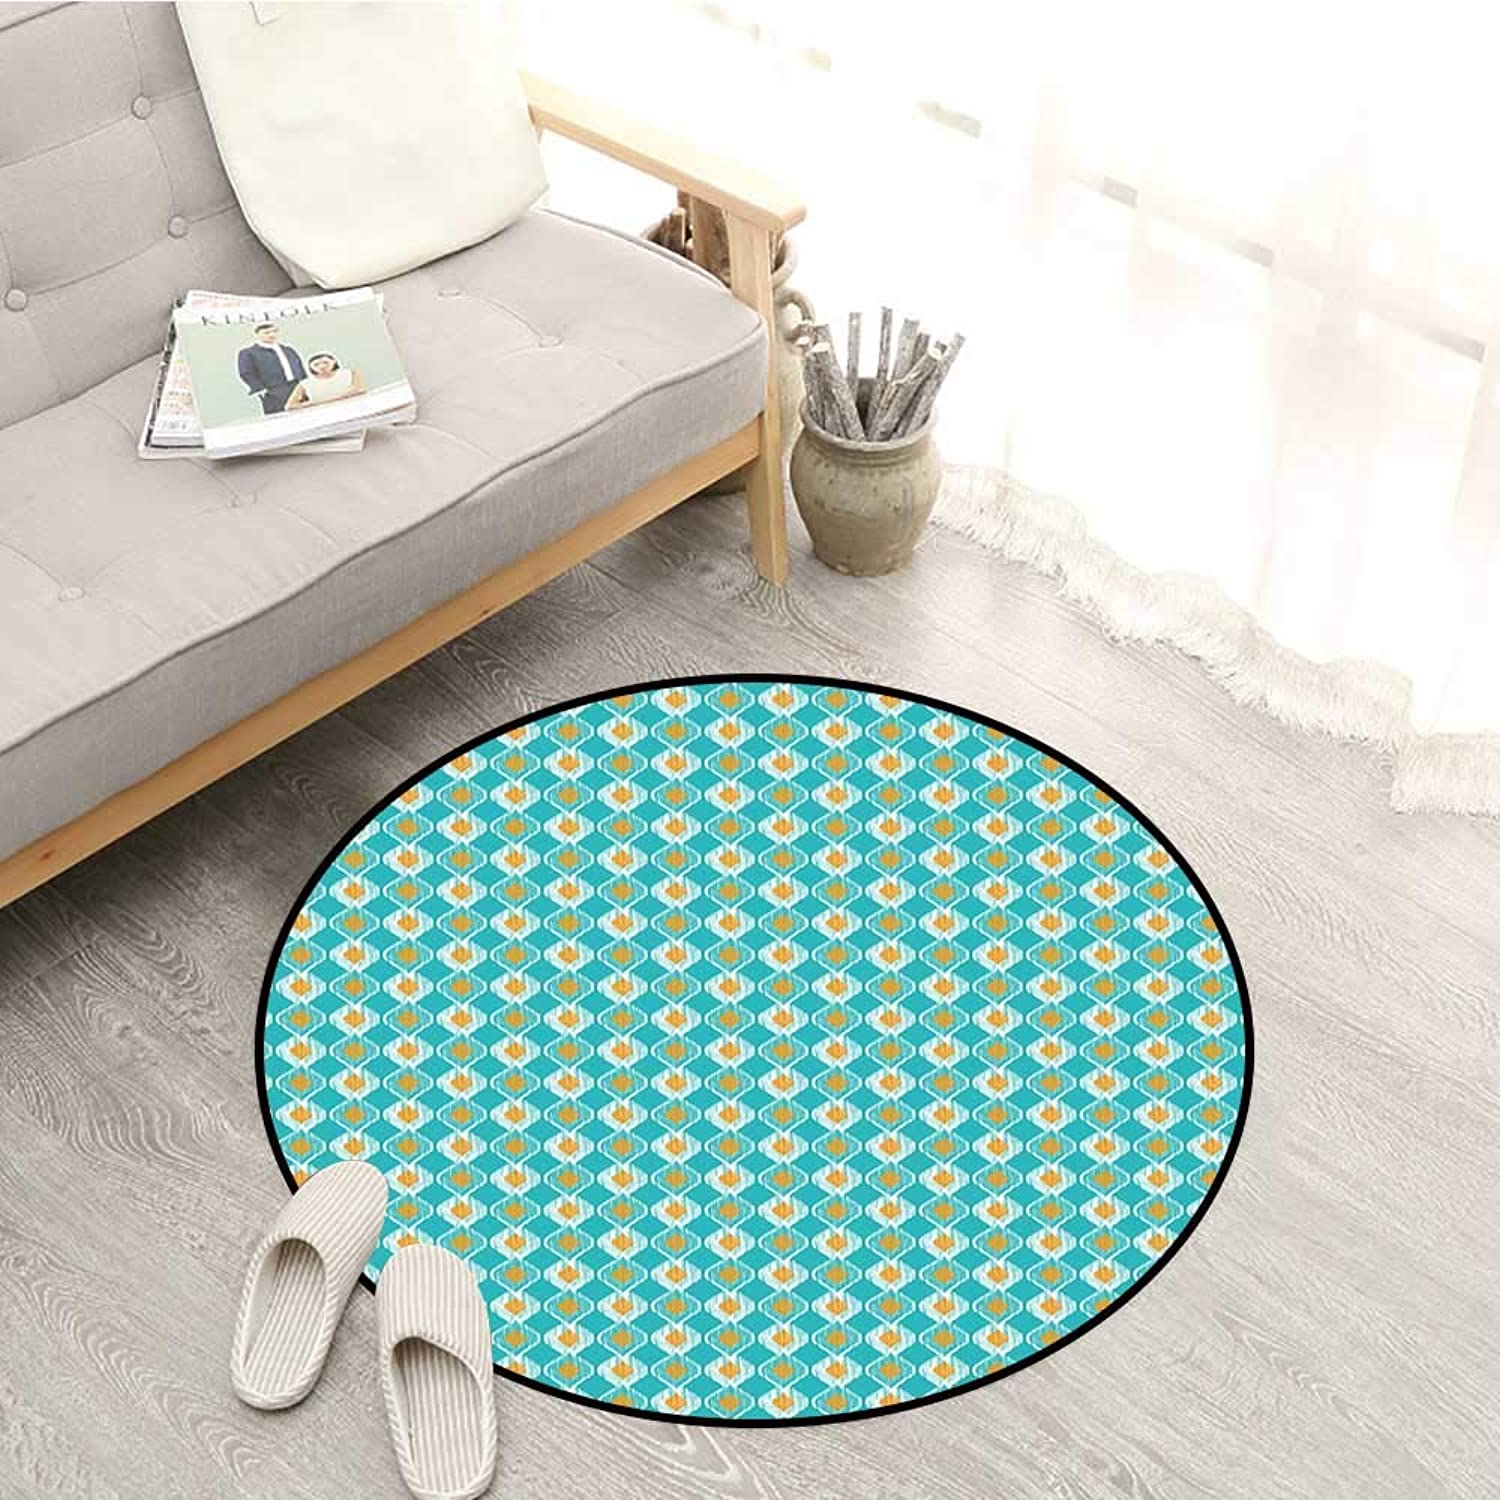 Ikat Carpets Soft Oval Shapes Pattern with African Civilizations Inspirations Lined Motifs Sofa Coffee Table Mat 4'3  Turquoise Marigold